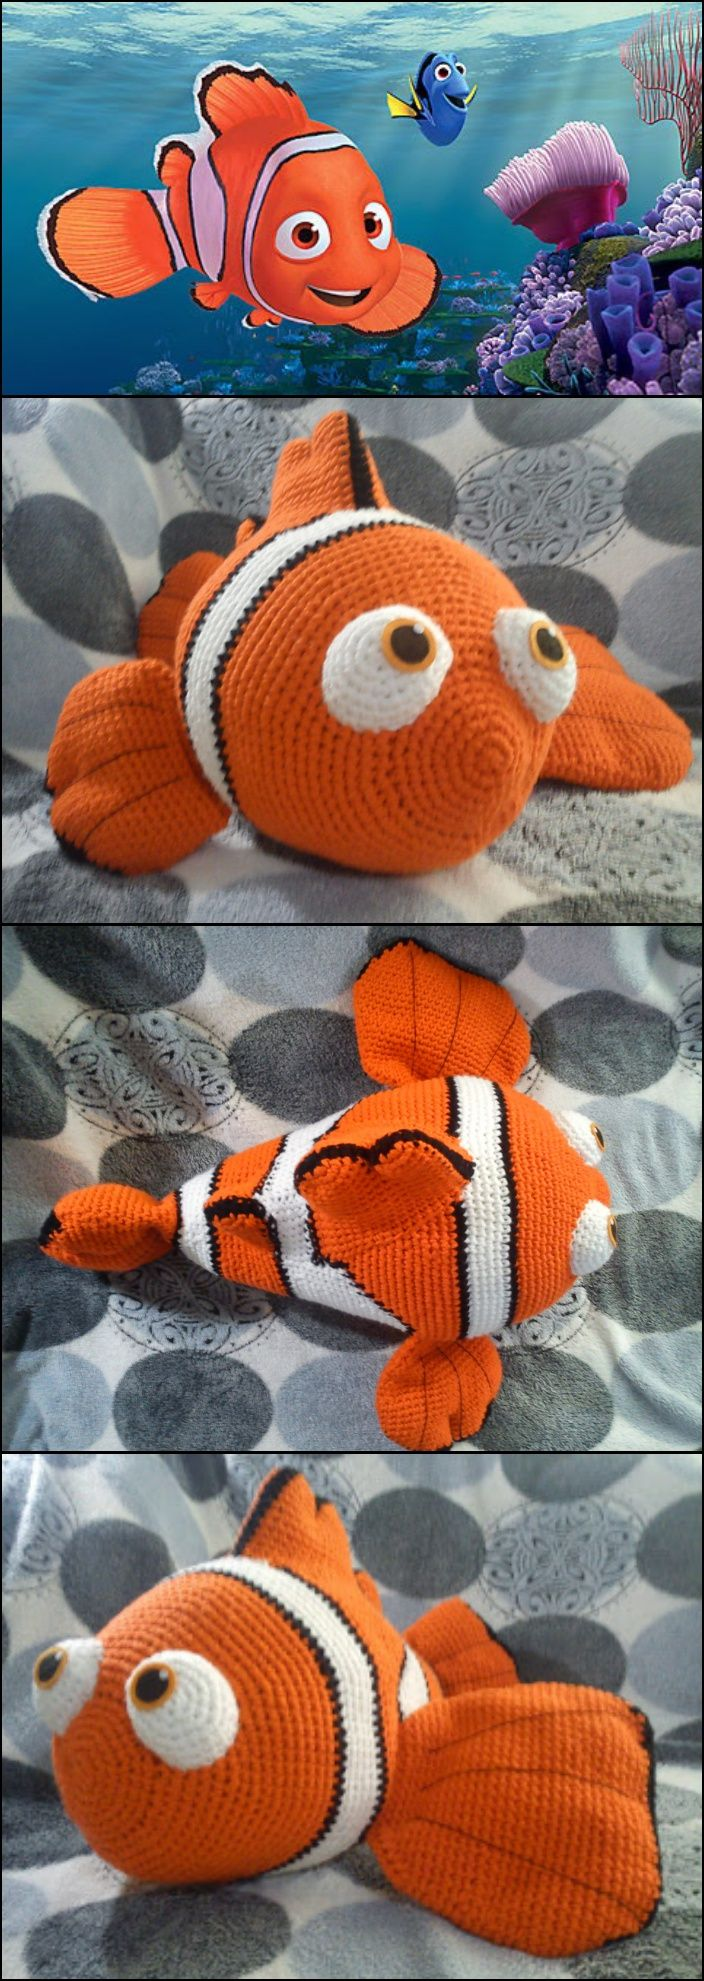 Finding Dory Crochet / Knitting Patterns | Crochet, Patterns and ...